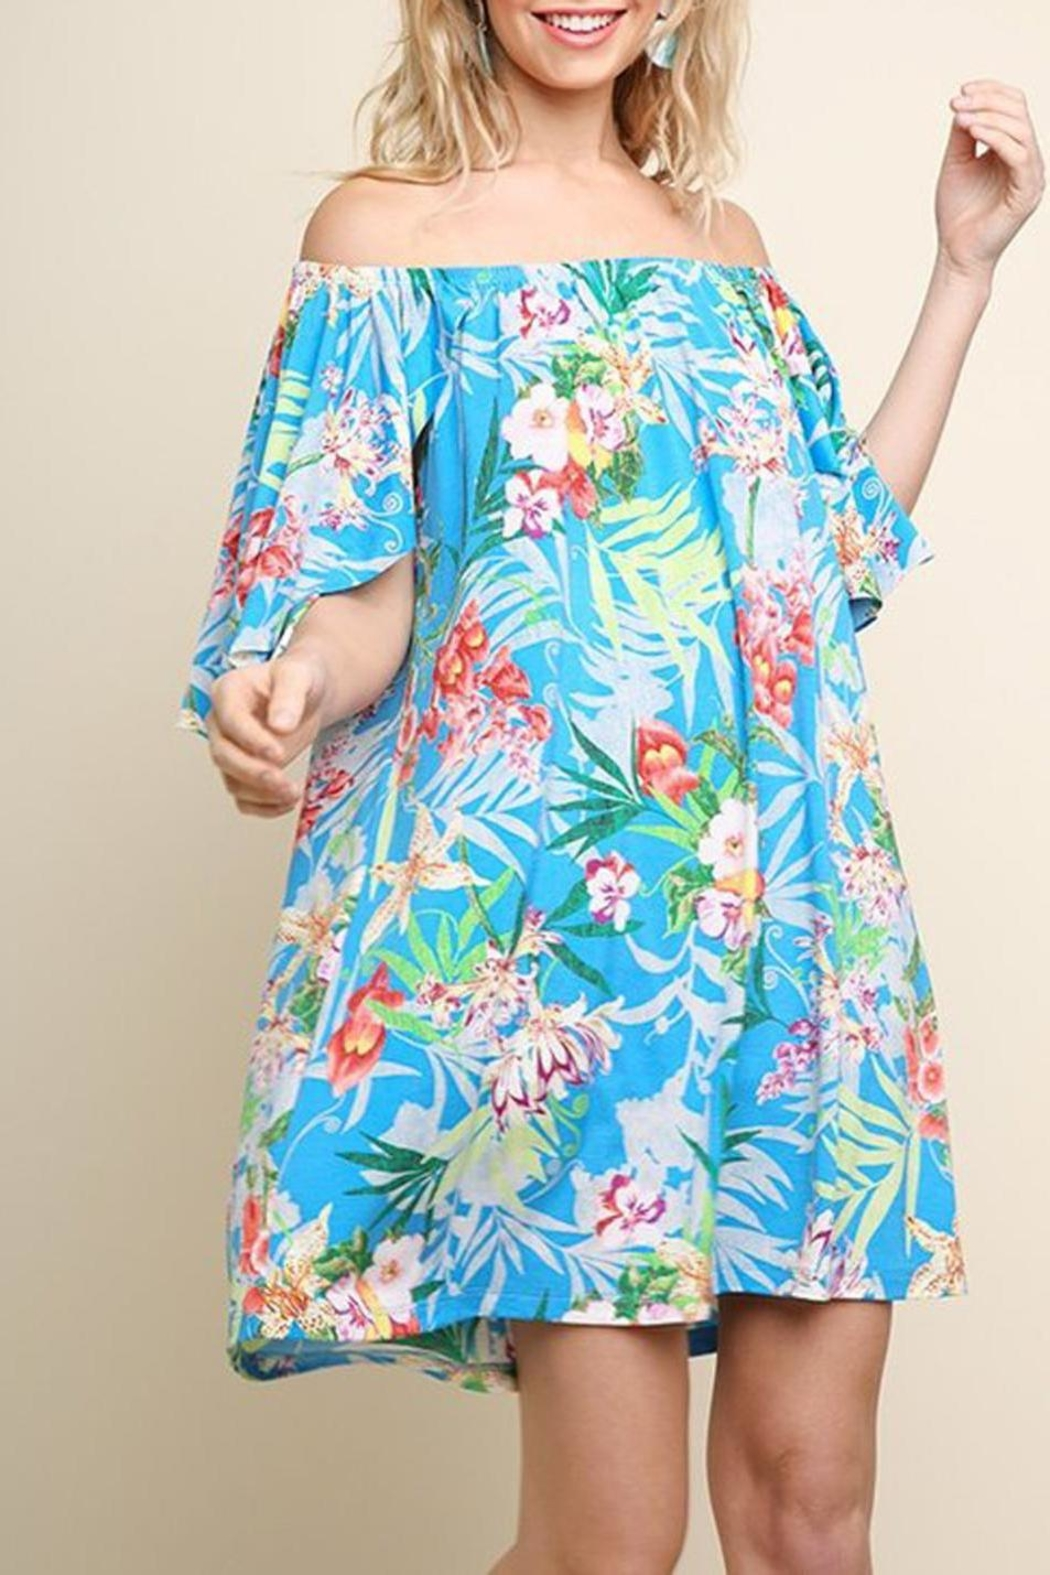 Umgee USA Turquoise Floral Dress - Main Image